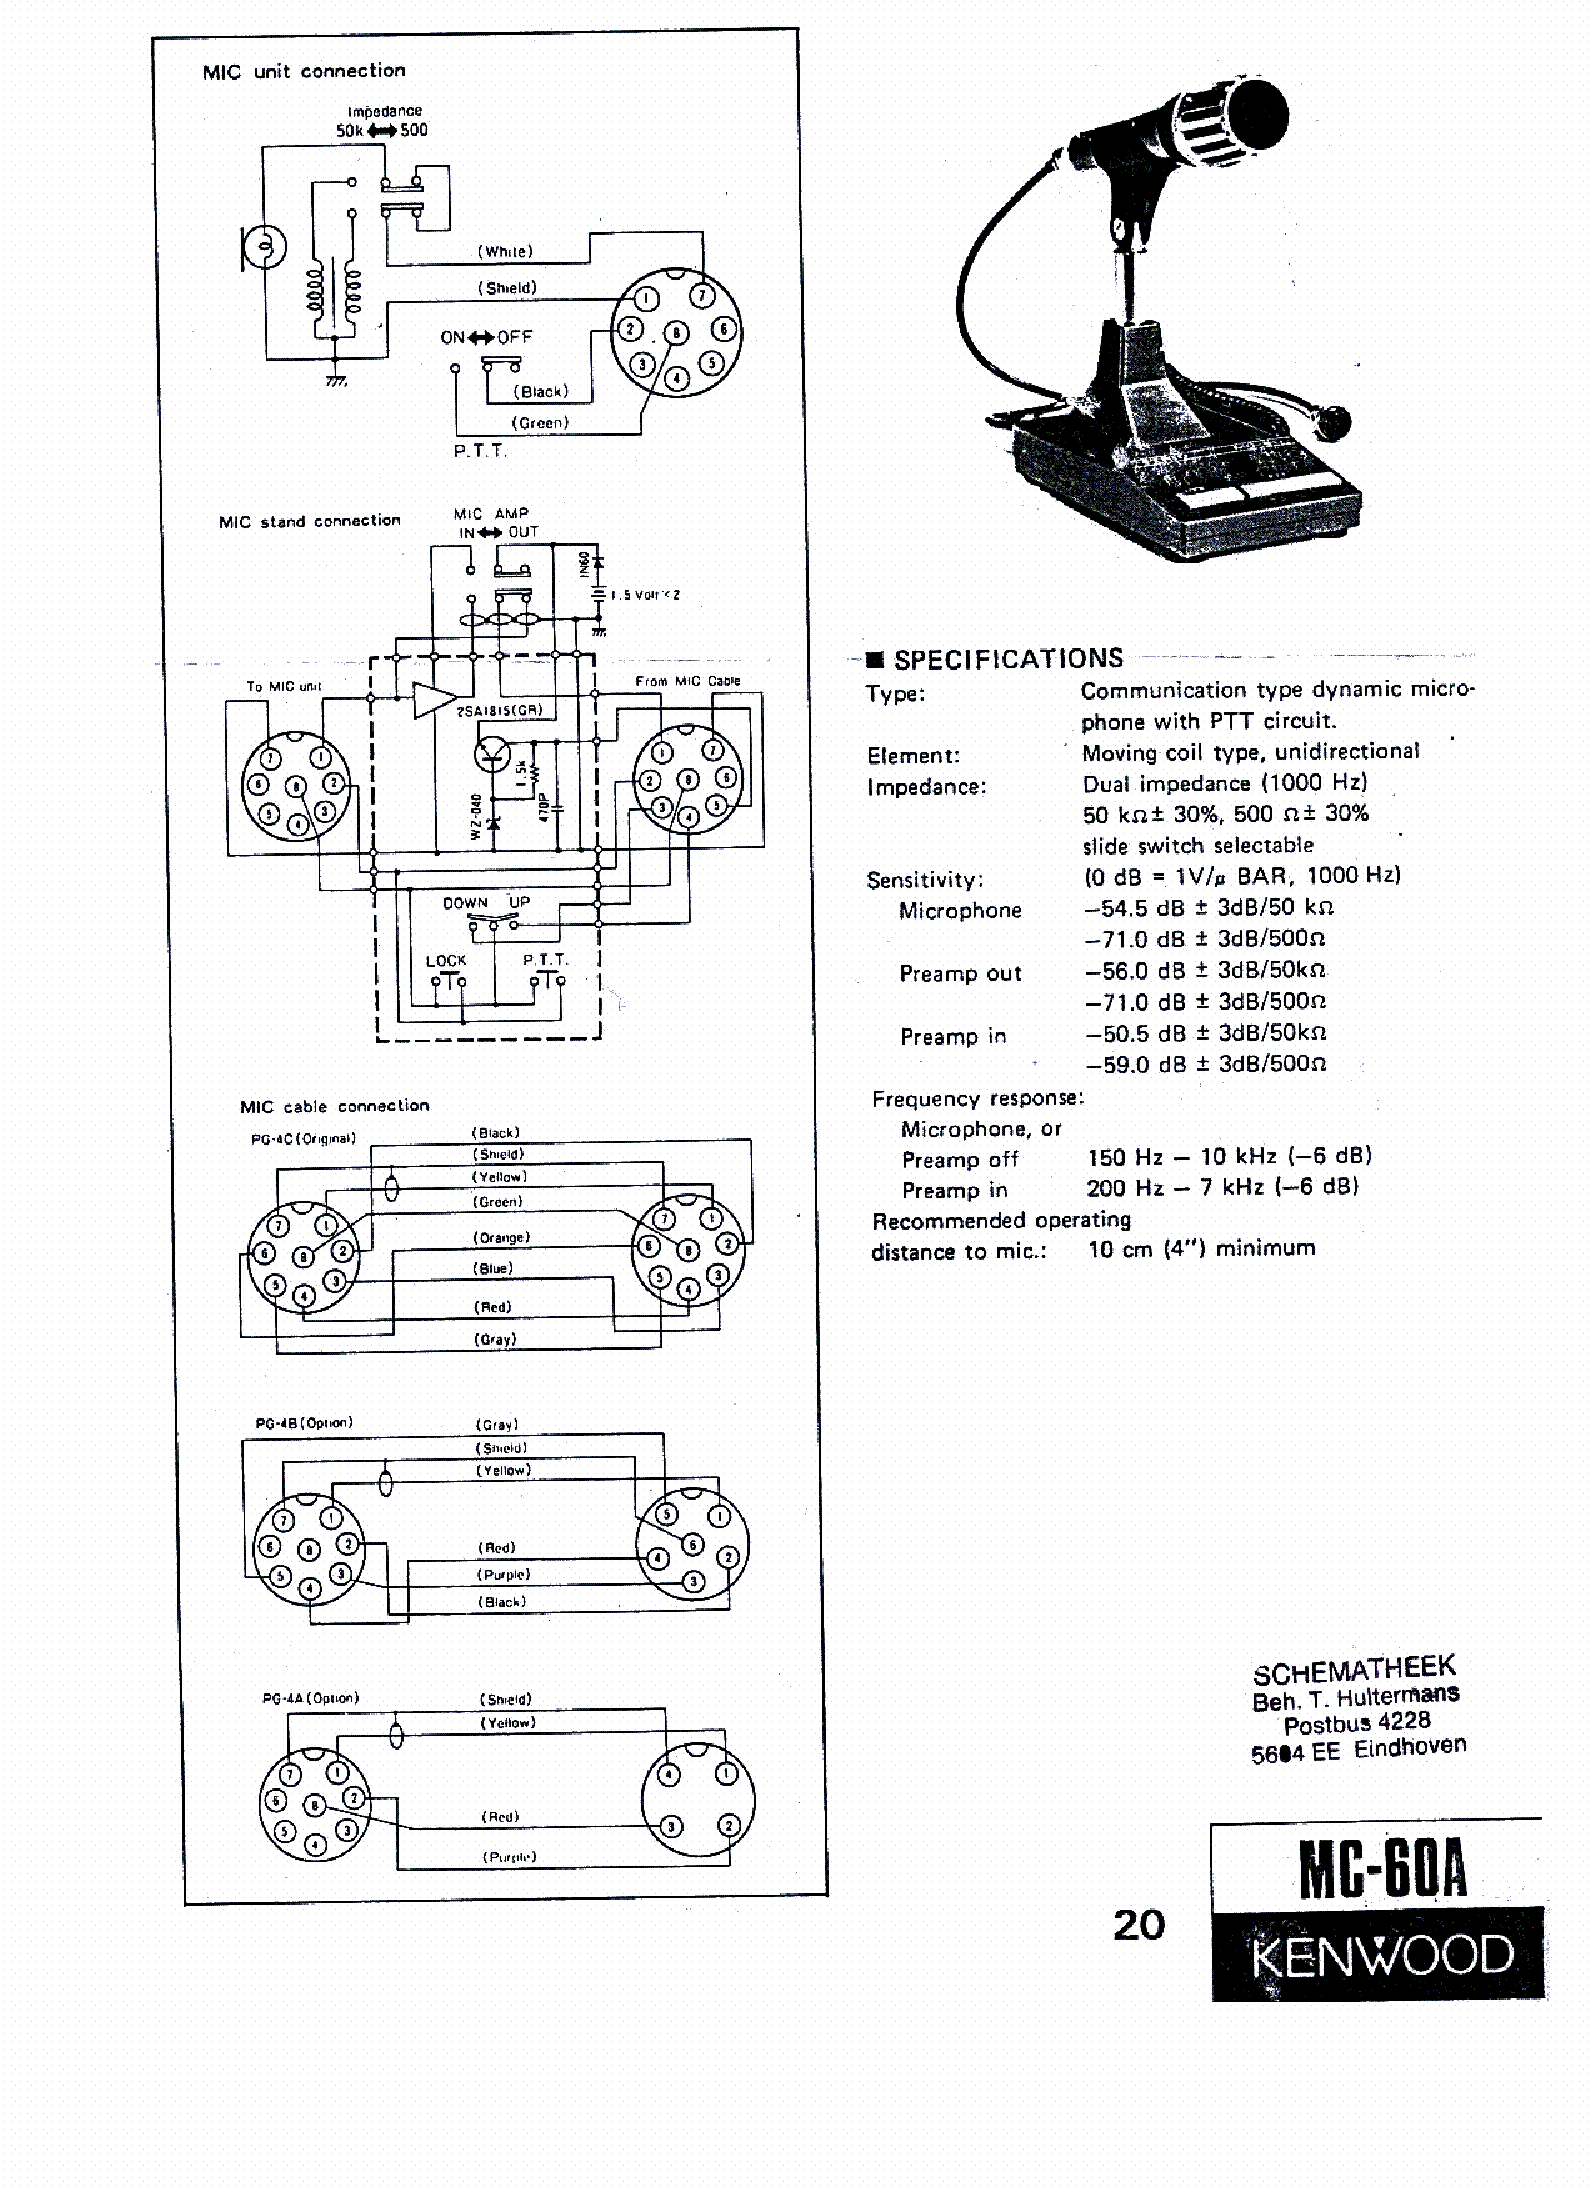 kenwood mc 60a wiring diagram kenwood mc 50 wiring diagram